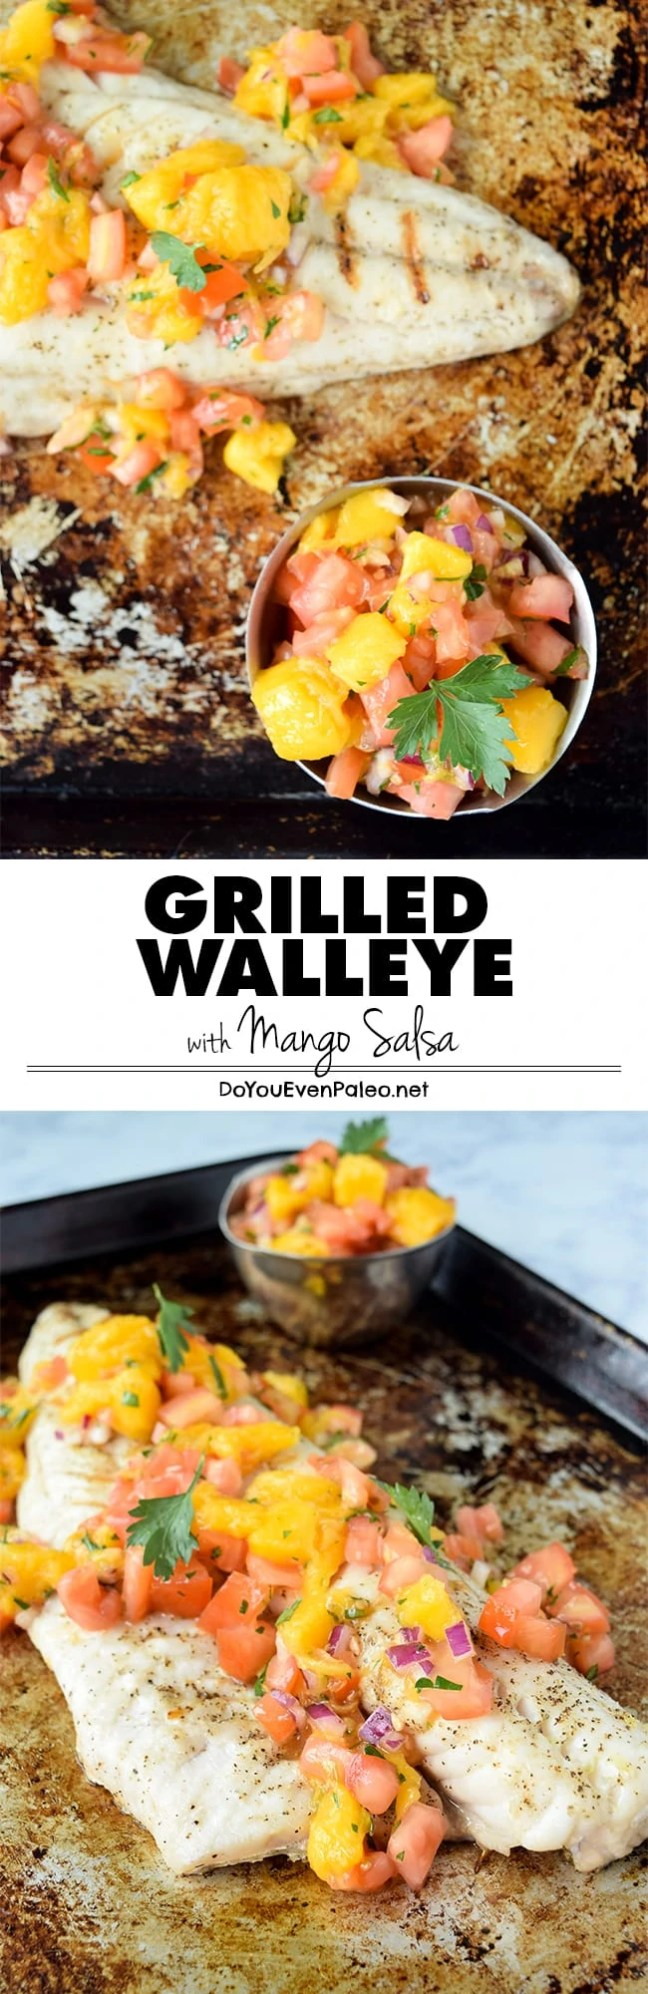 A simple recipe for grilled walleye topped with mango salsa - the flavors of summer, on the dinner table in less than 30 minutes! | DoYouEvenPaleo.net